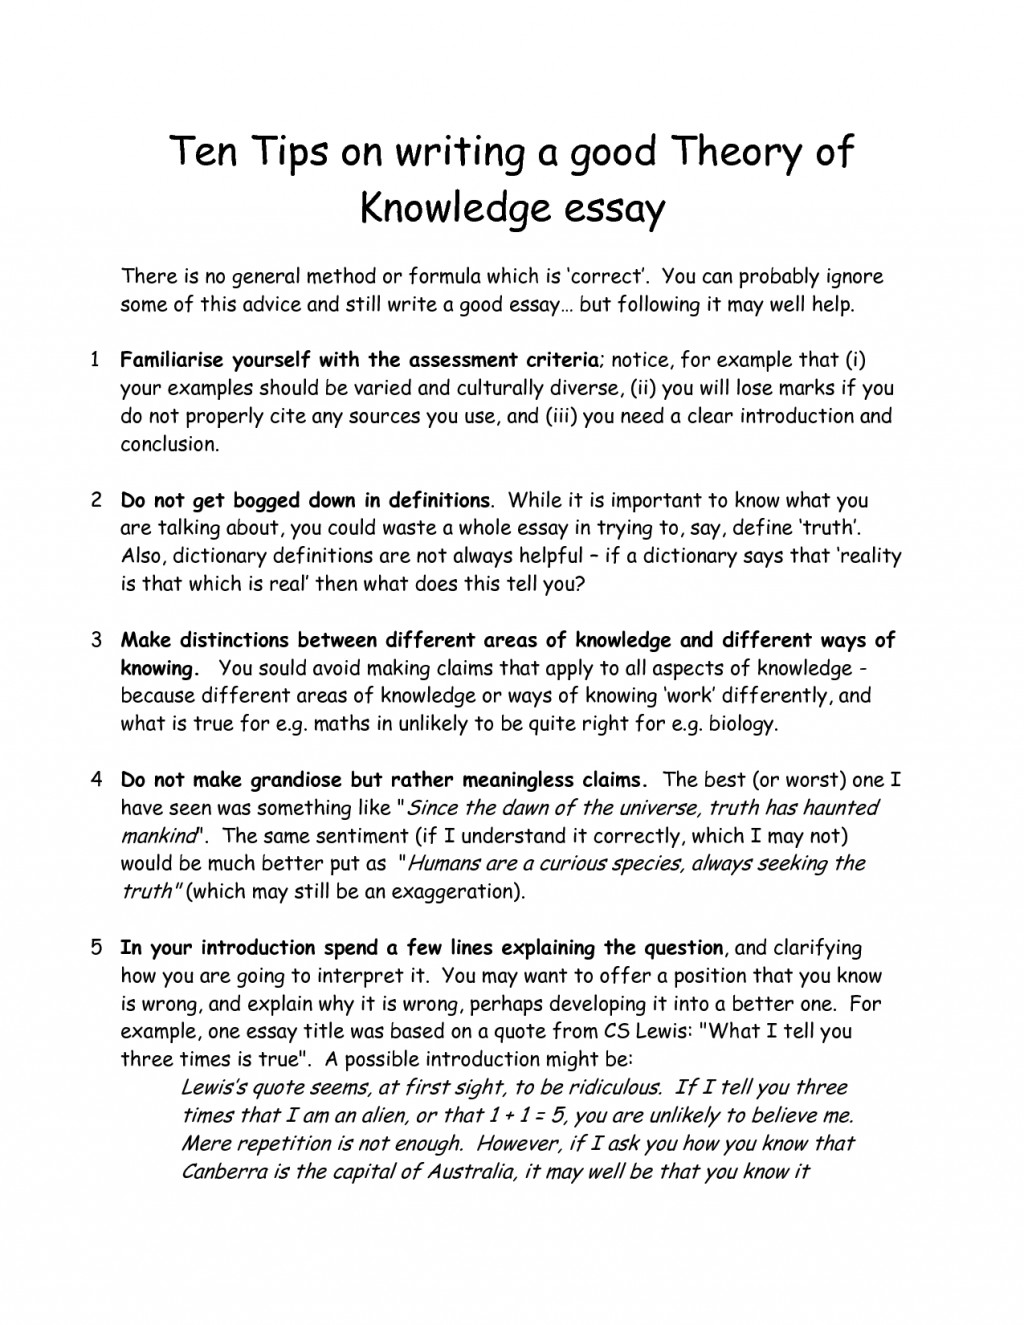 004 Essay Example Introduce Yourself Goal Blockety Co Myself Writing Top About Self Reflection Pdf Introduction Scholarship Examples Large